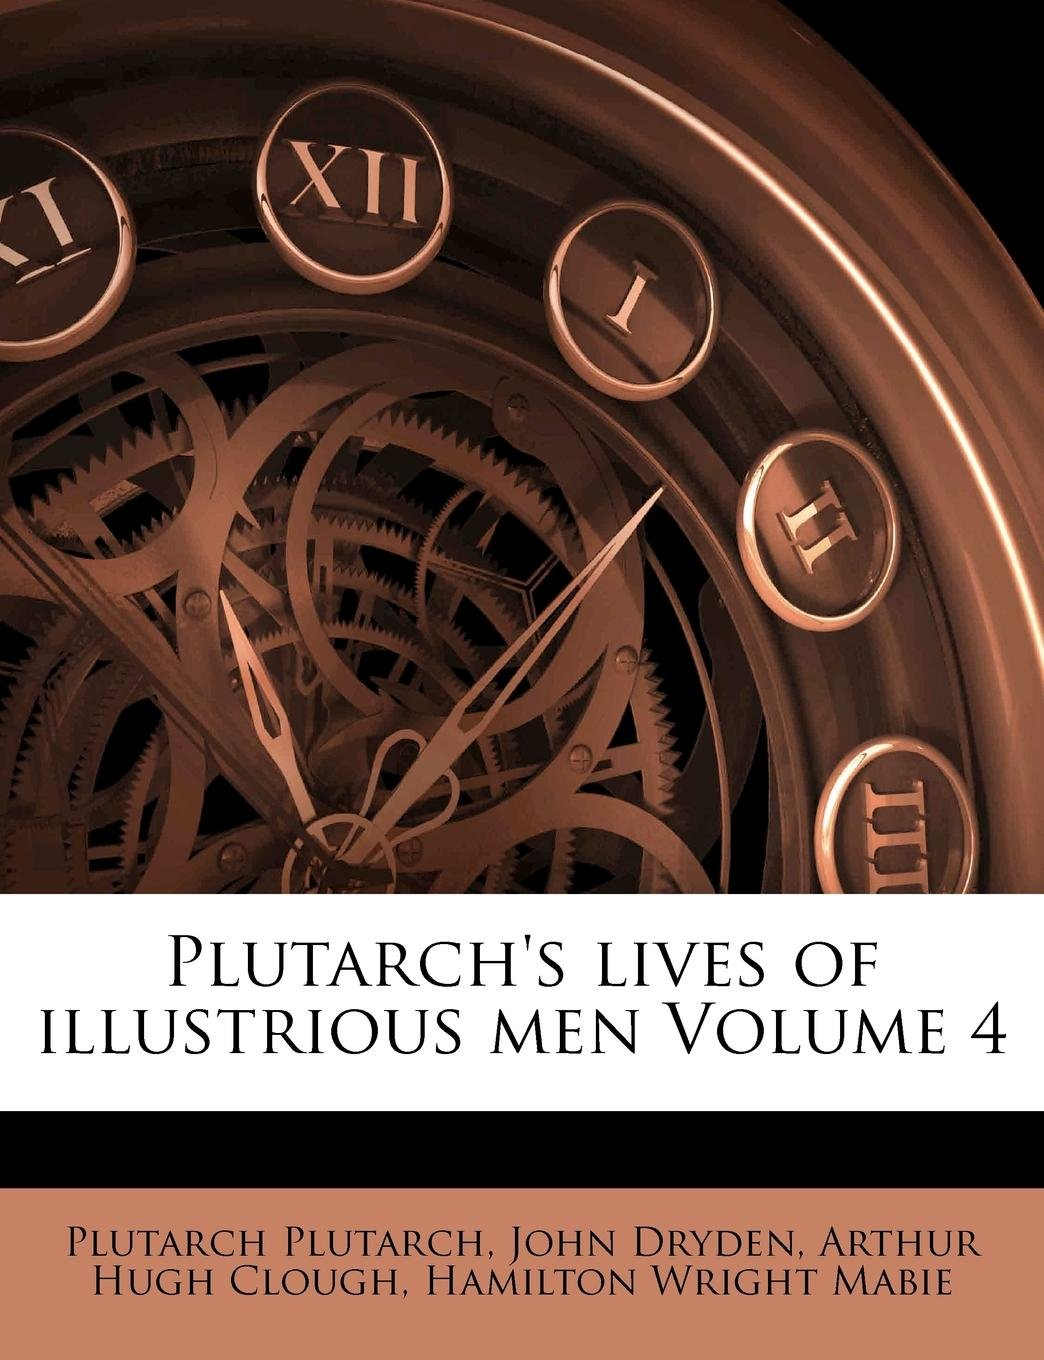 Download Plutarch's lives of illustrious men Volume 4 PDF